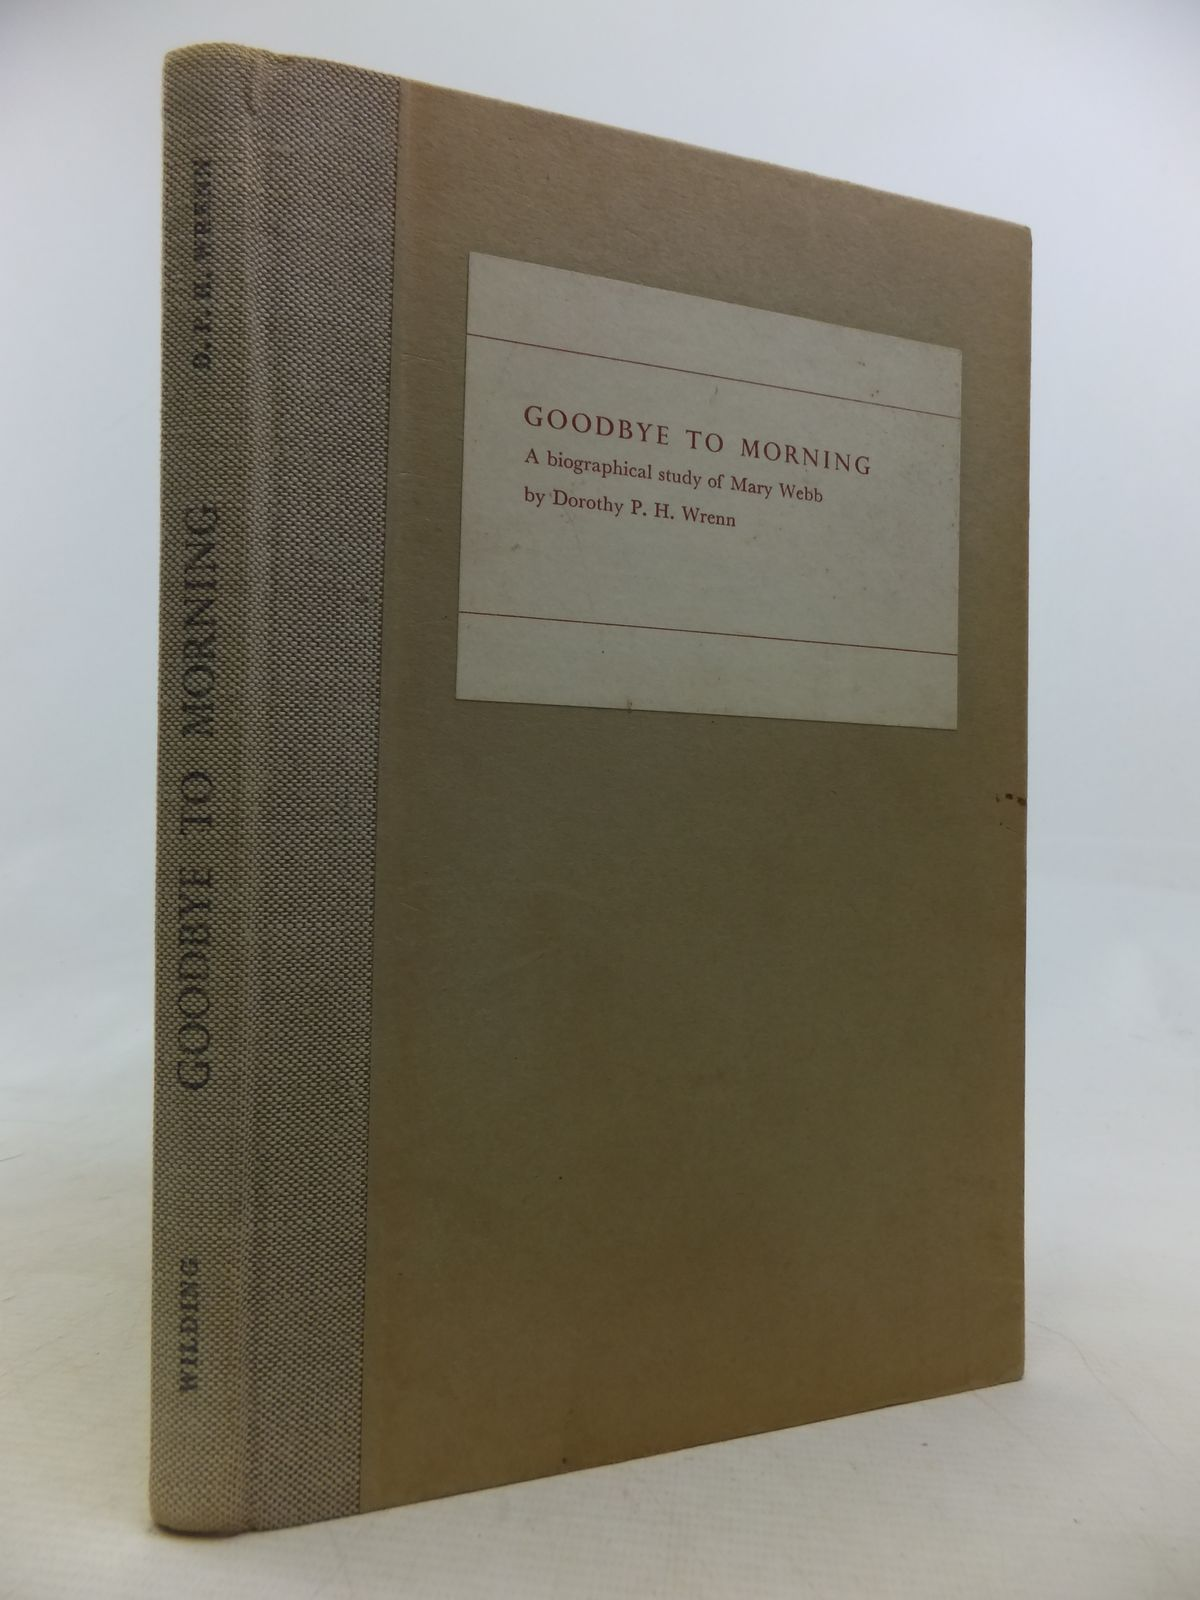 Photo of GOODBYE TO MORNING: A BIOGRAPHICAL STUDY OF MARY WEBB written by Wrenn, Dorothy P.H. published by Wilding & Son Ltd. (STOCK CODE: 1809698)  for sale by Stella & Rose's Books